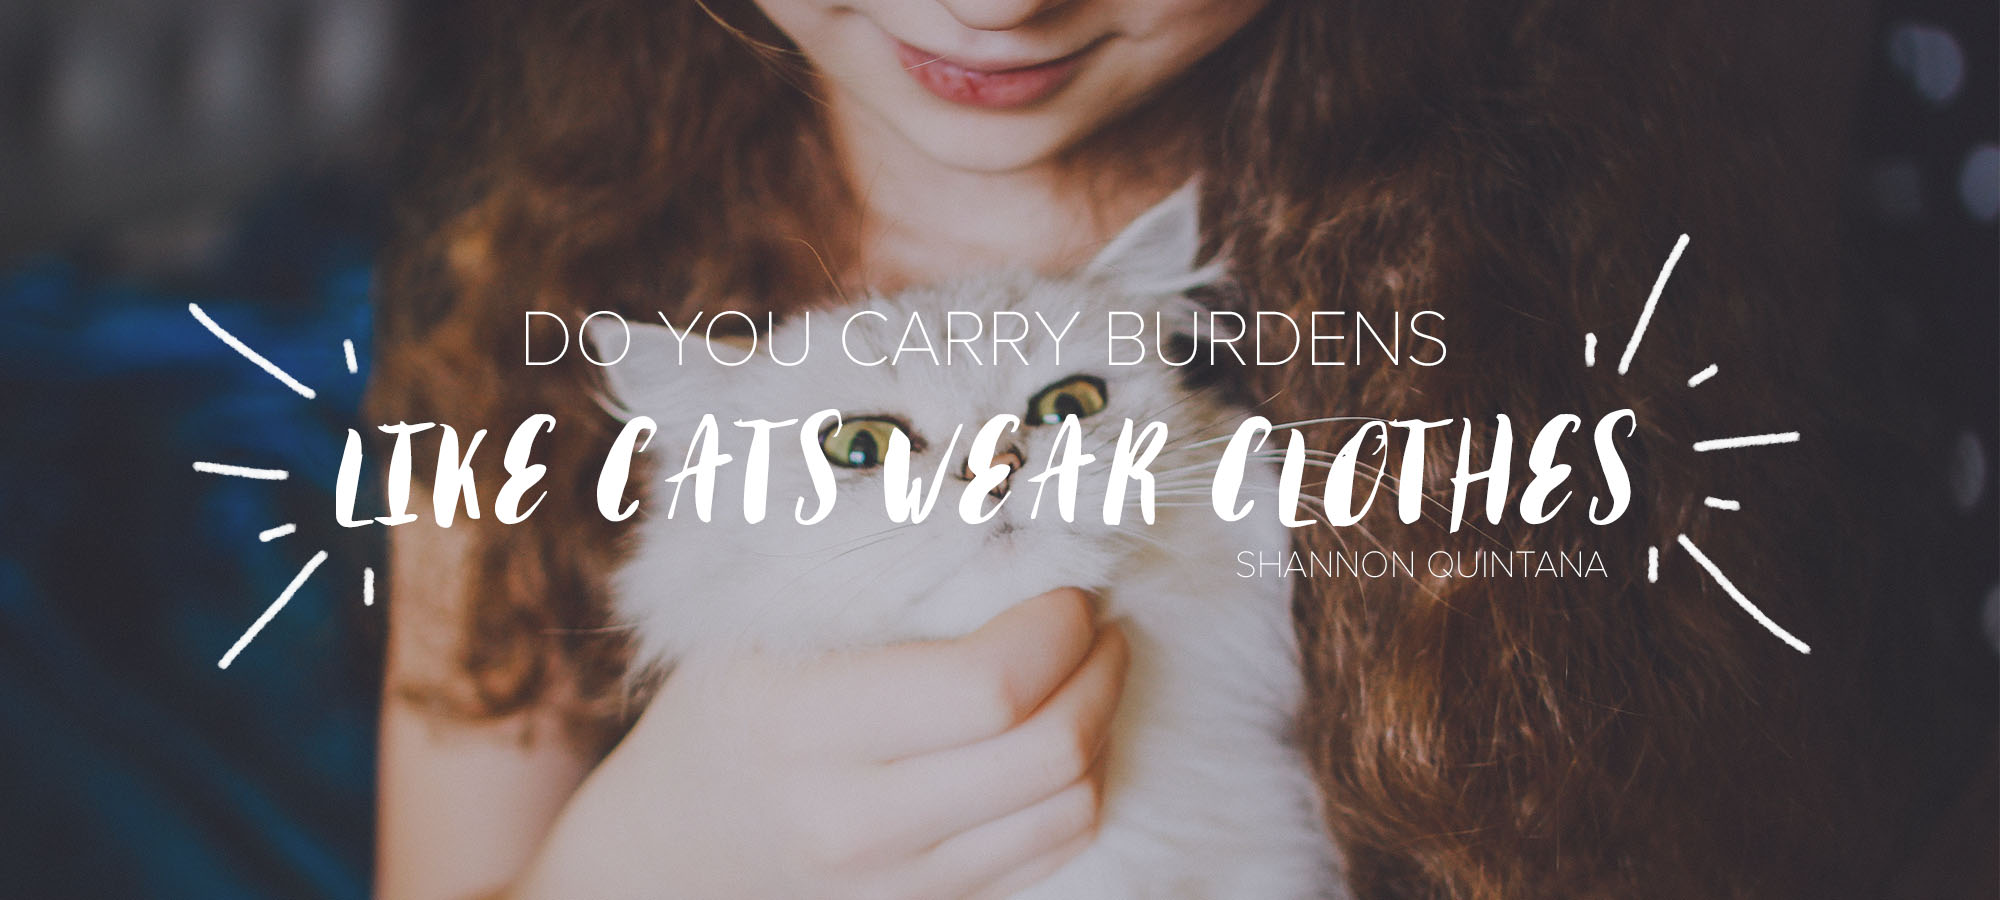 Do You Carry Burdens Like Cats Wear Clothes?